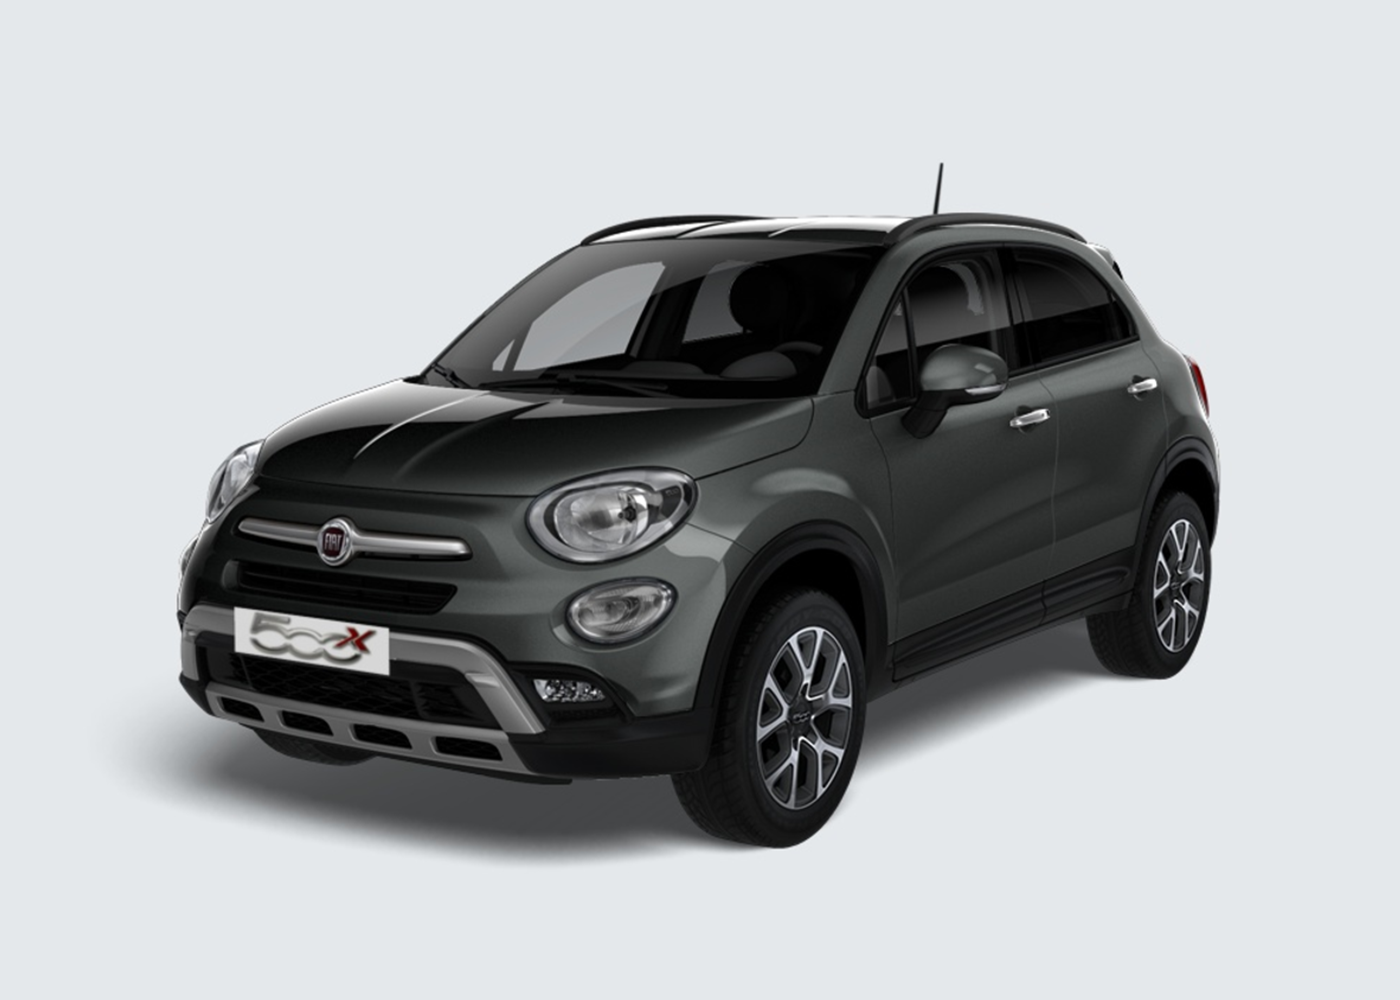 fiat 500x 1 4 multiair 140 cv cross grigio moda km0 a soli 19500 su miacar bsilt. Black Bedroom Furniture Sets. Home Design Ideas